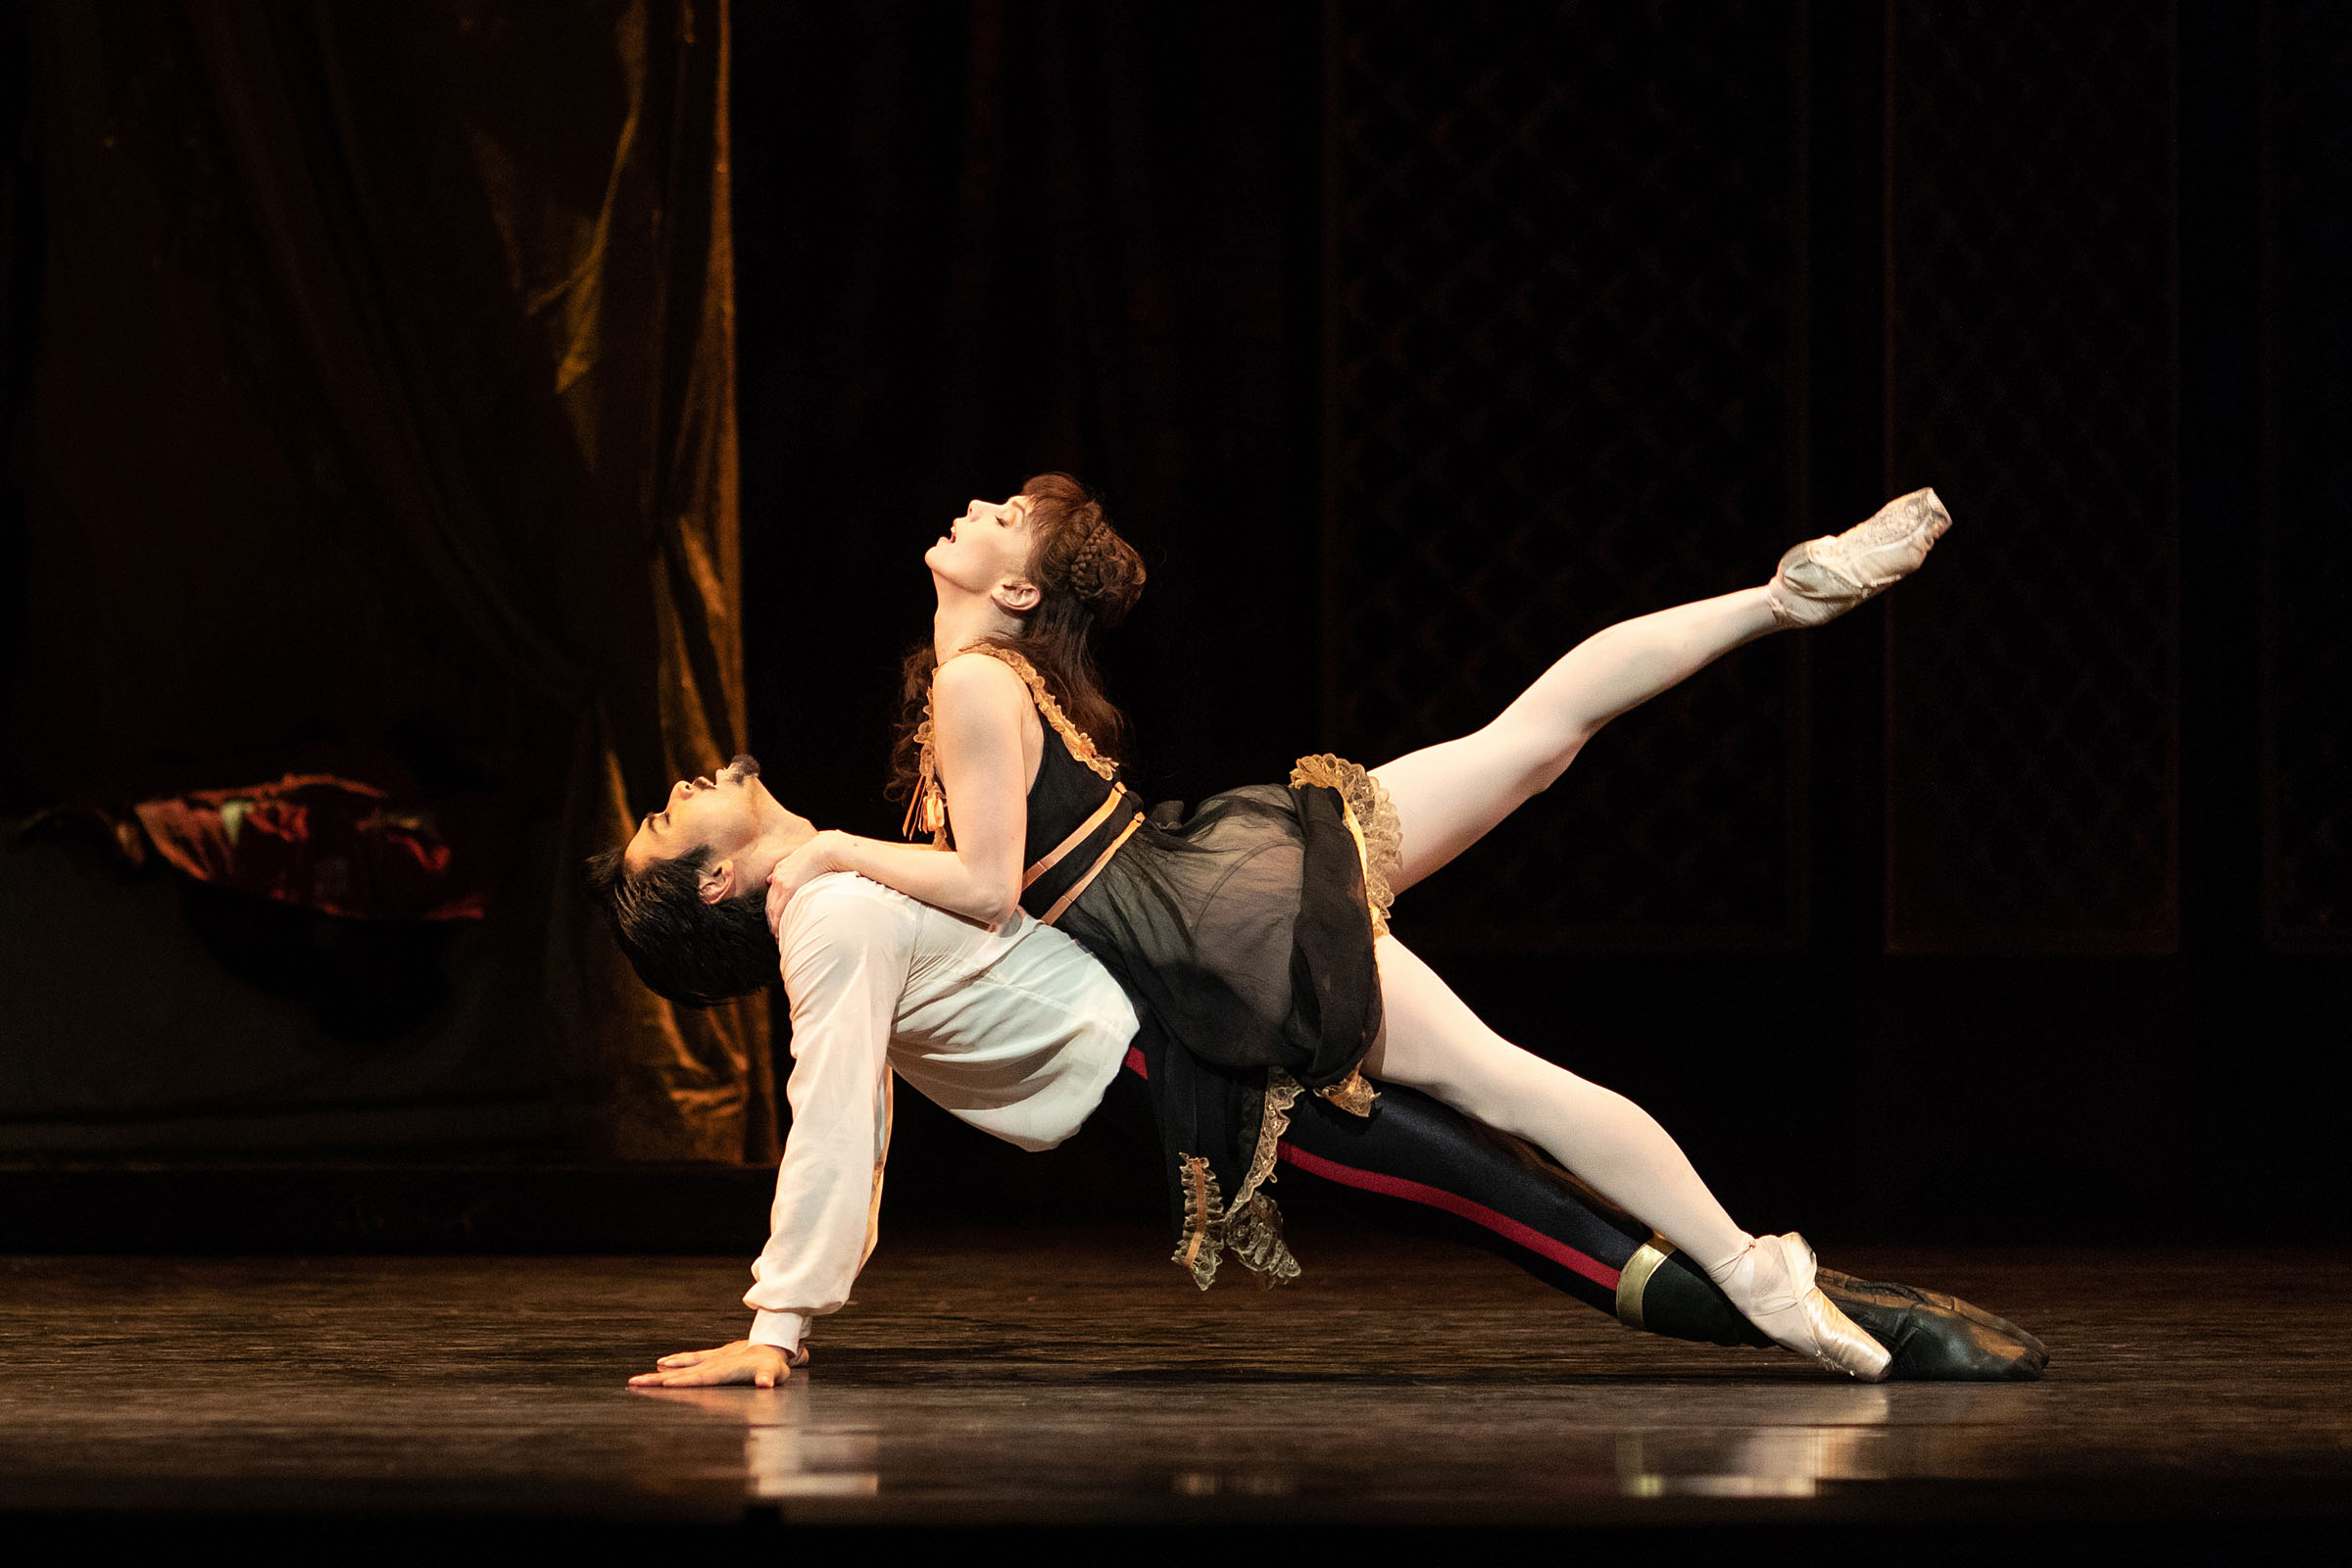 Ryoichi Hirano as Crown Prince Rudolf and Natalia Osipova as Mary Vetsera in Kenneth Macmillan's Mayerling